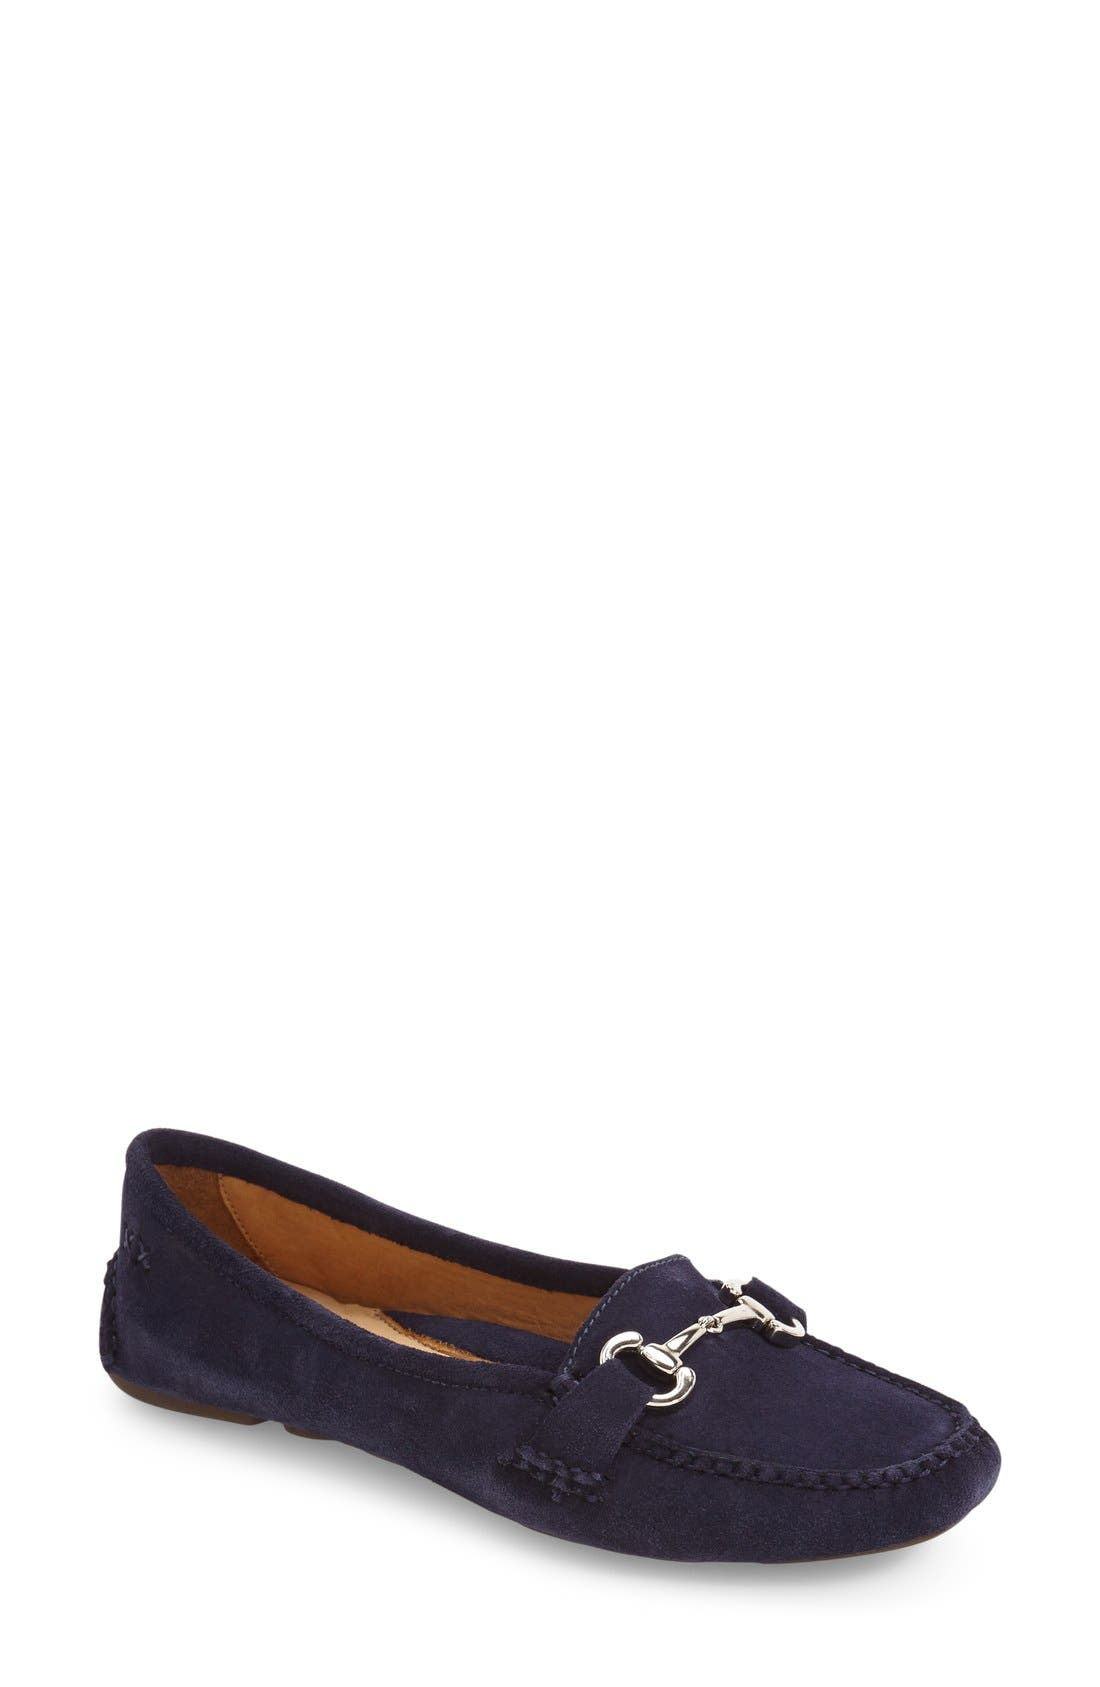 'Carrie' Loafer,                         Main,                         color, Navy Suede